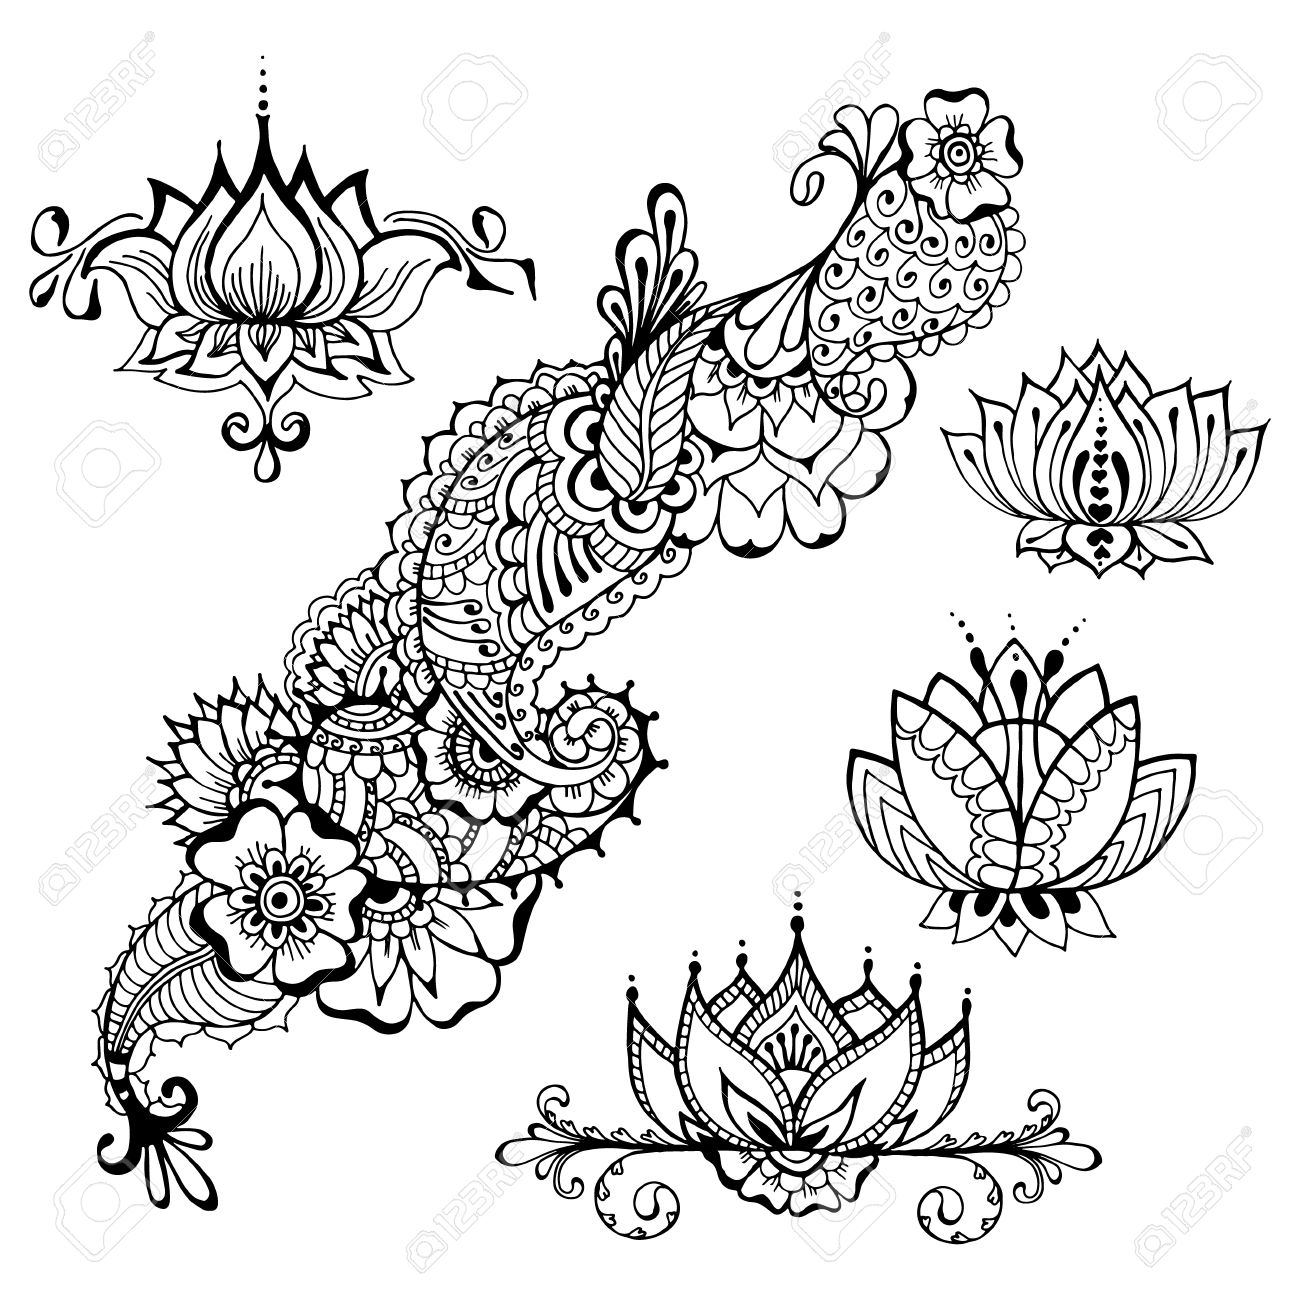 Templates For Tattoo Design With Mehndi Elements. Floral Ornament ...